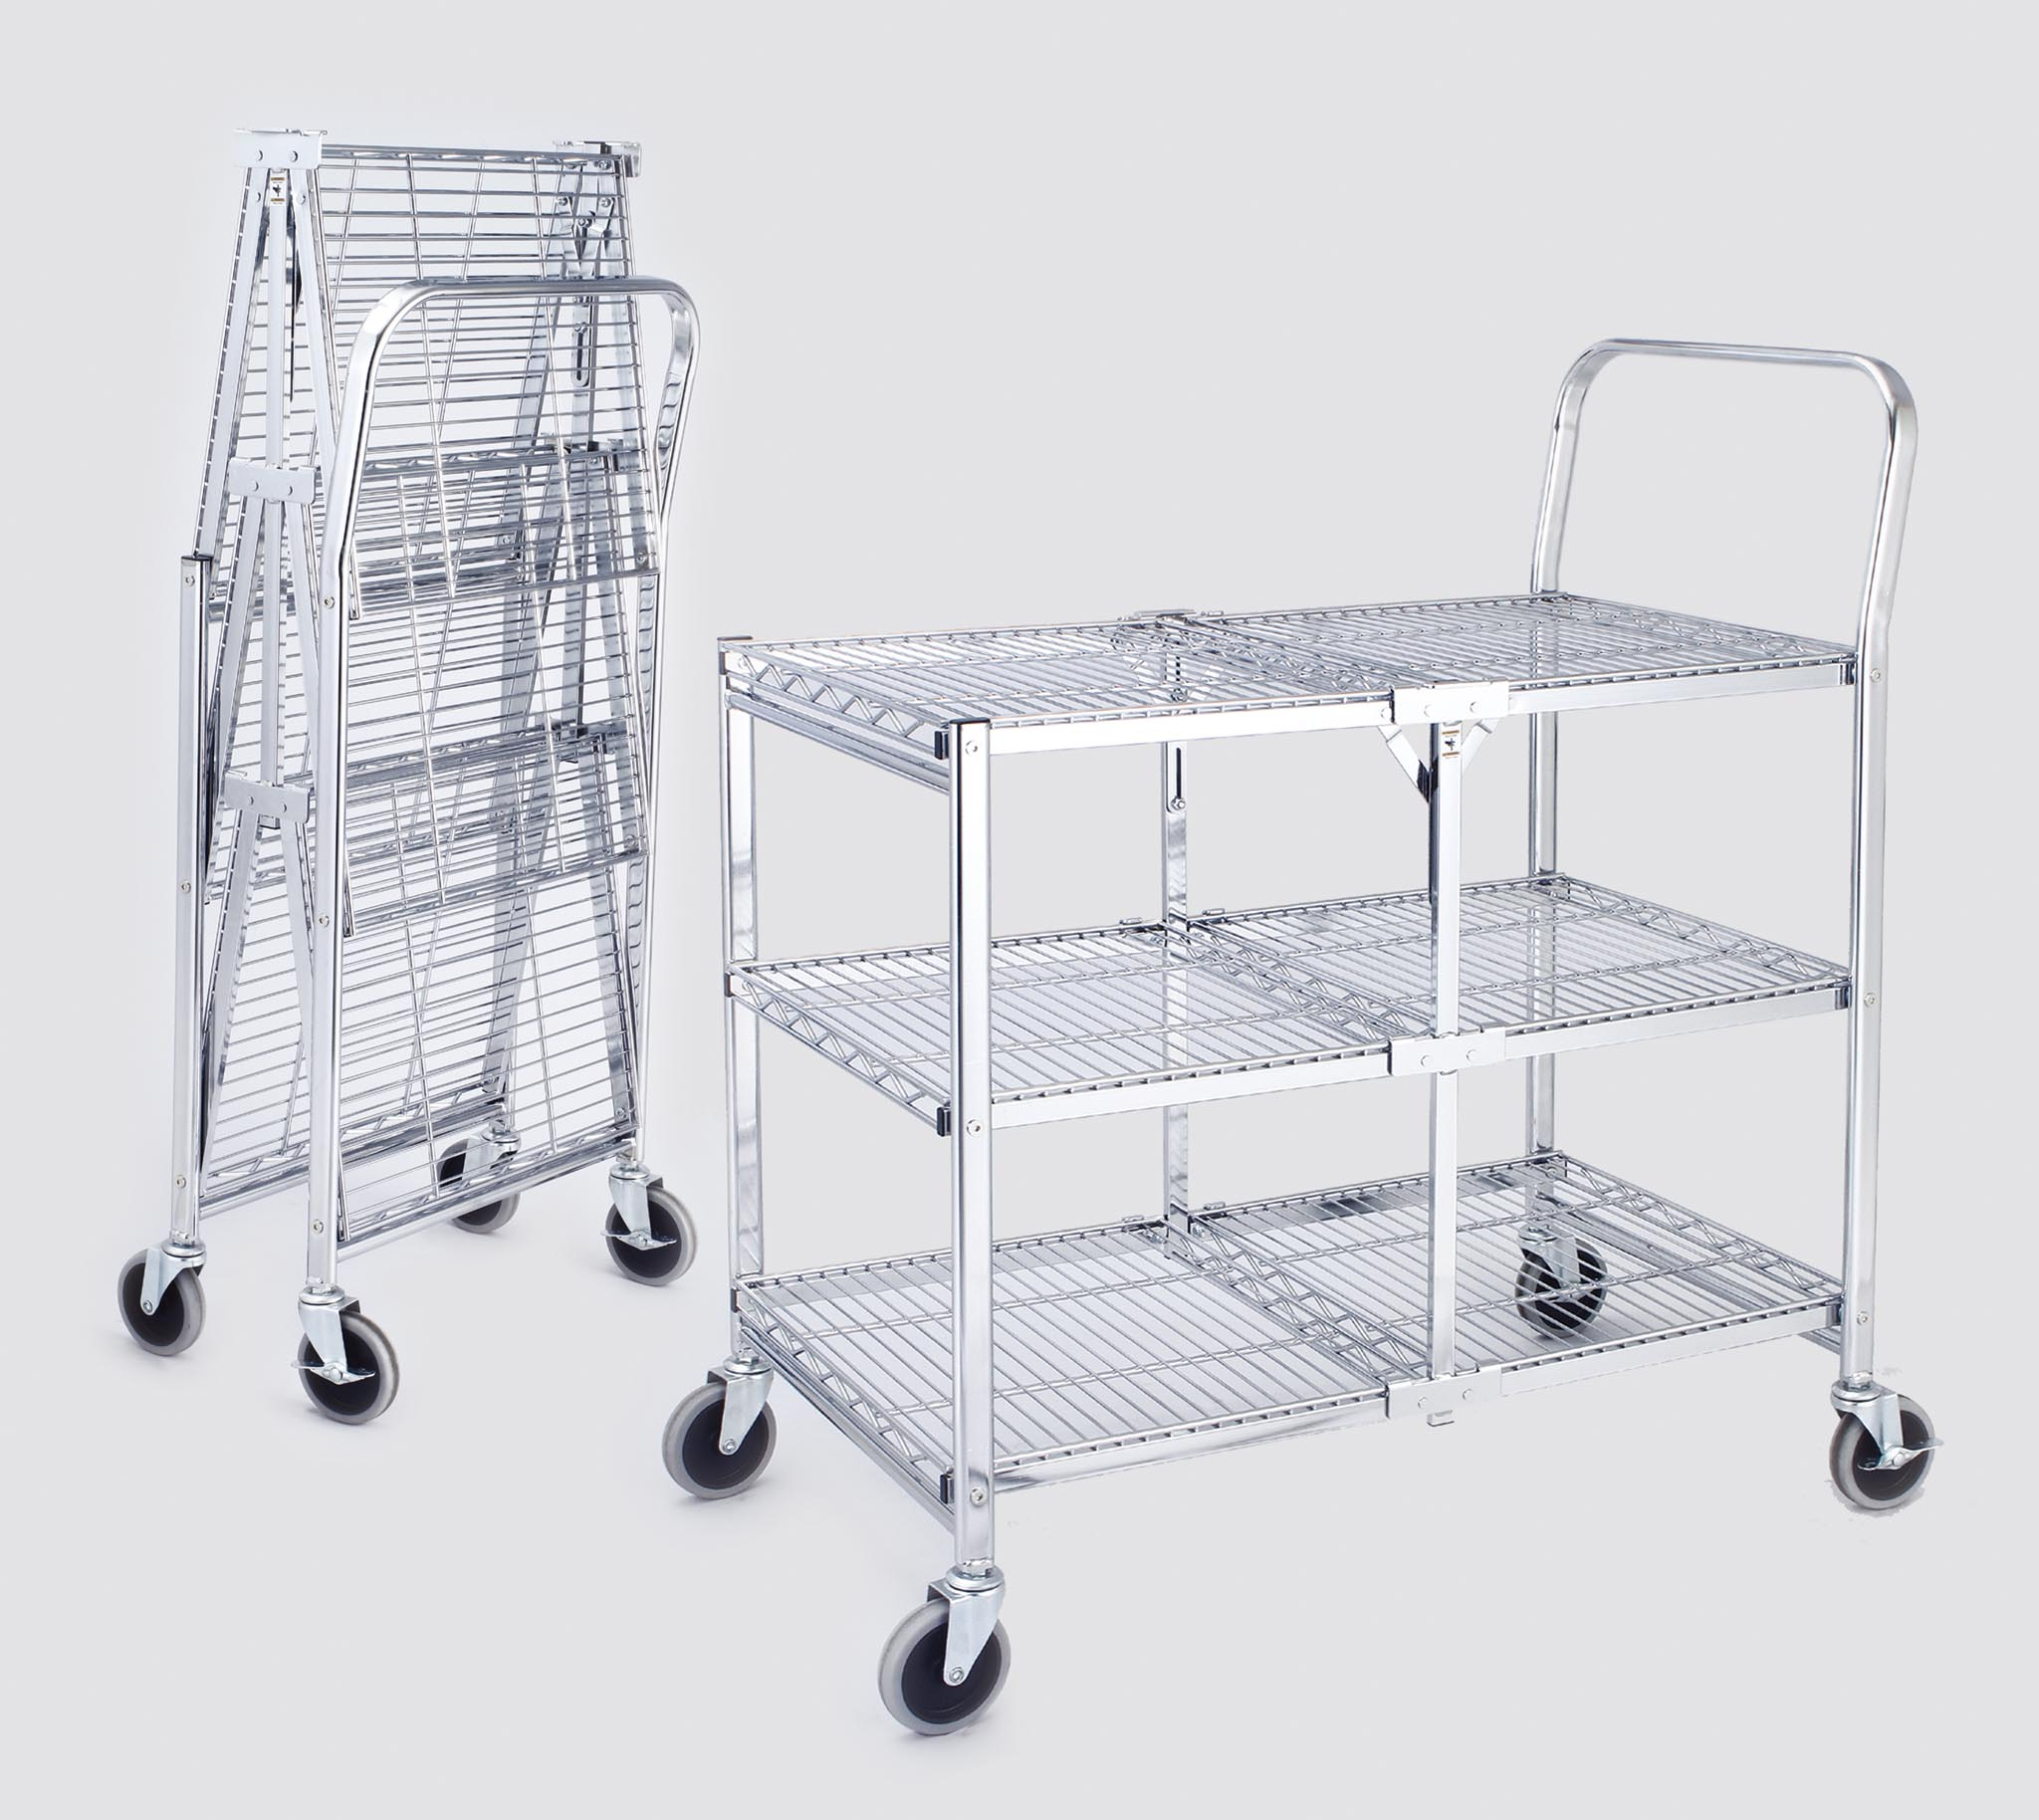 Cargopak New Folding Trolley Range